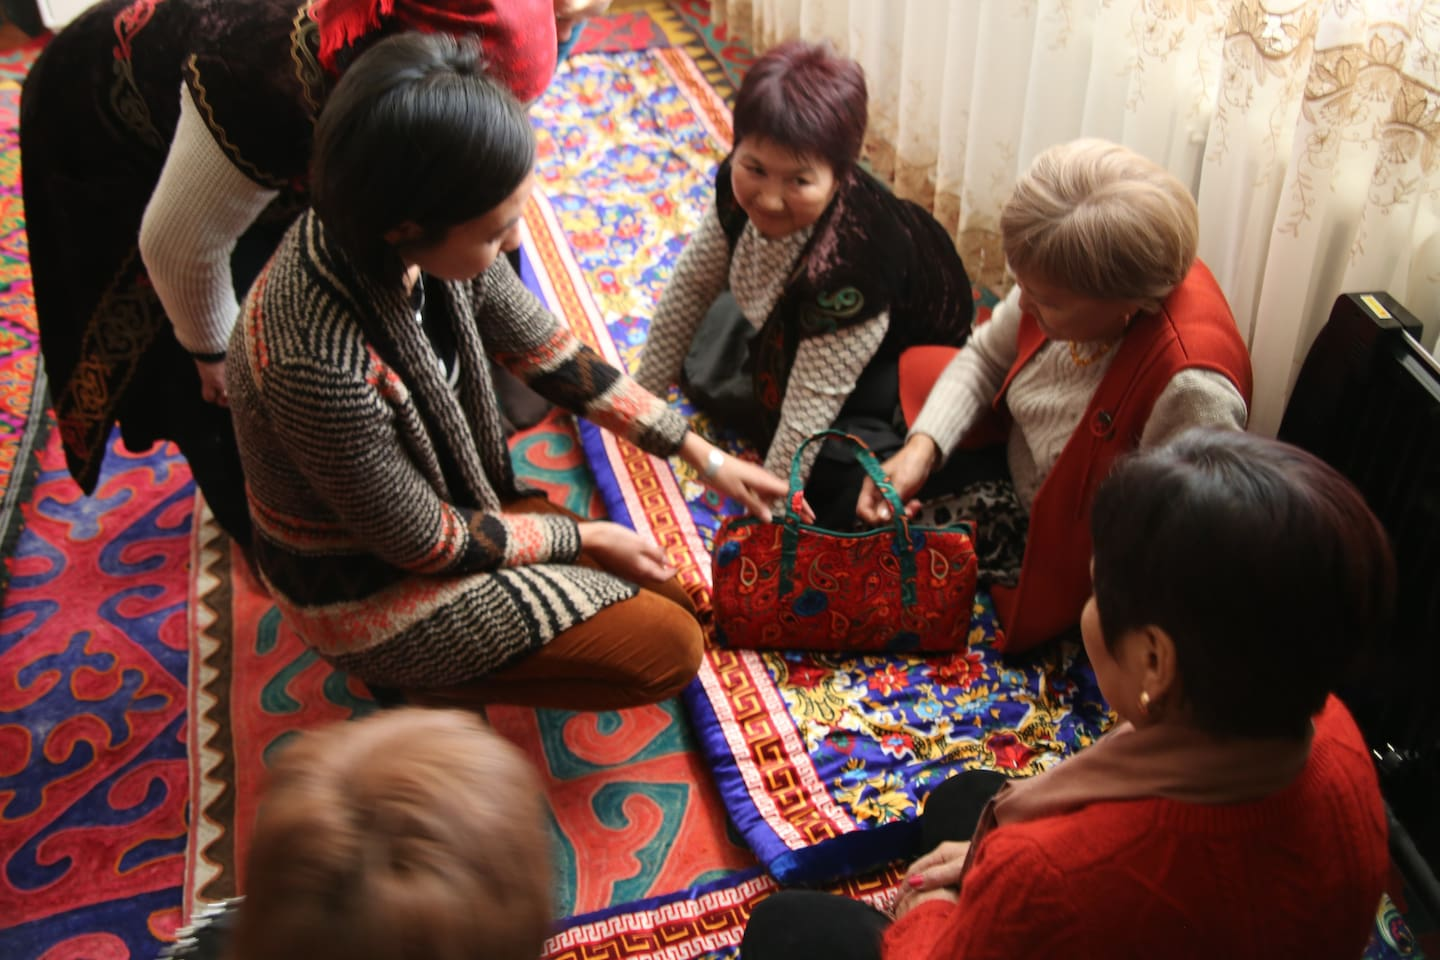 Entire house is decorated with Kyrgyz traditional carpets, wall hangings, and seating cushions.